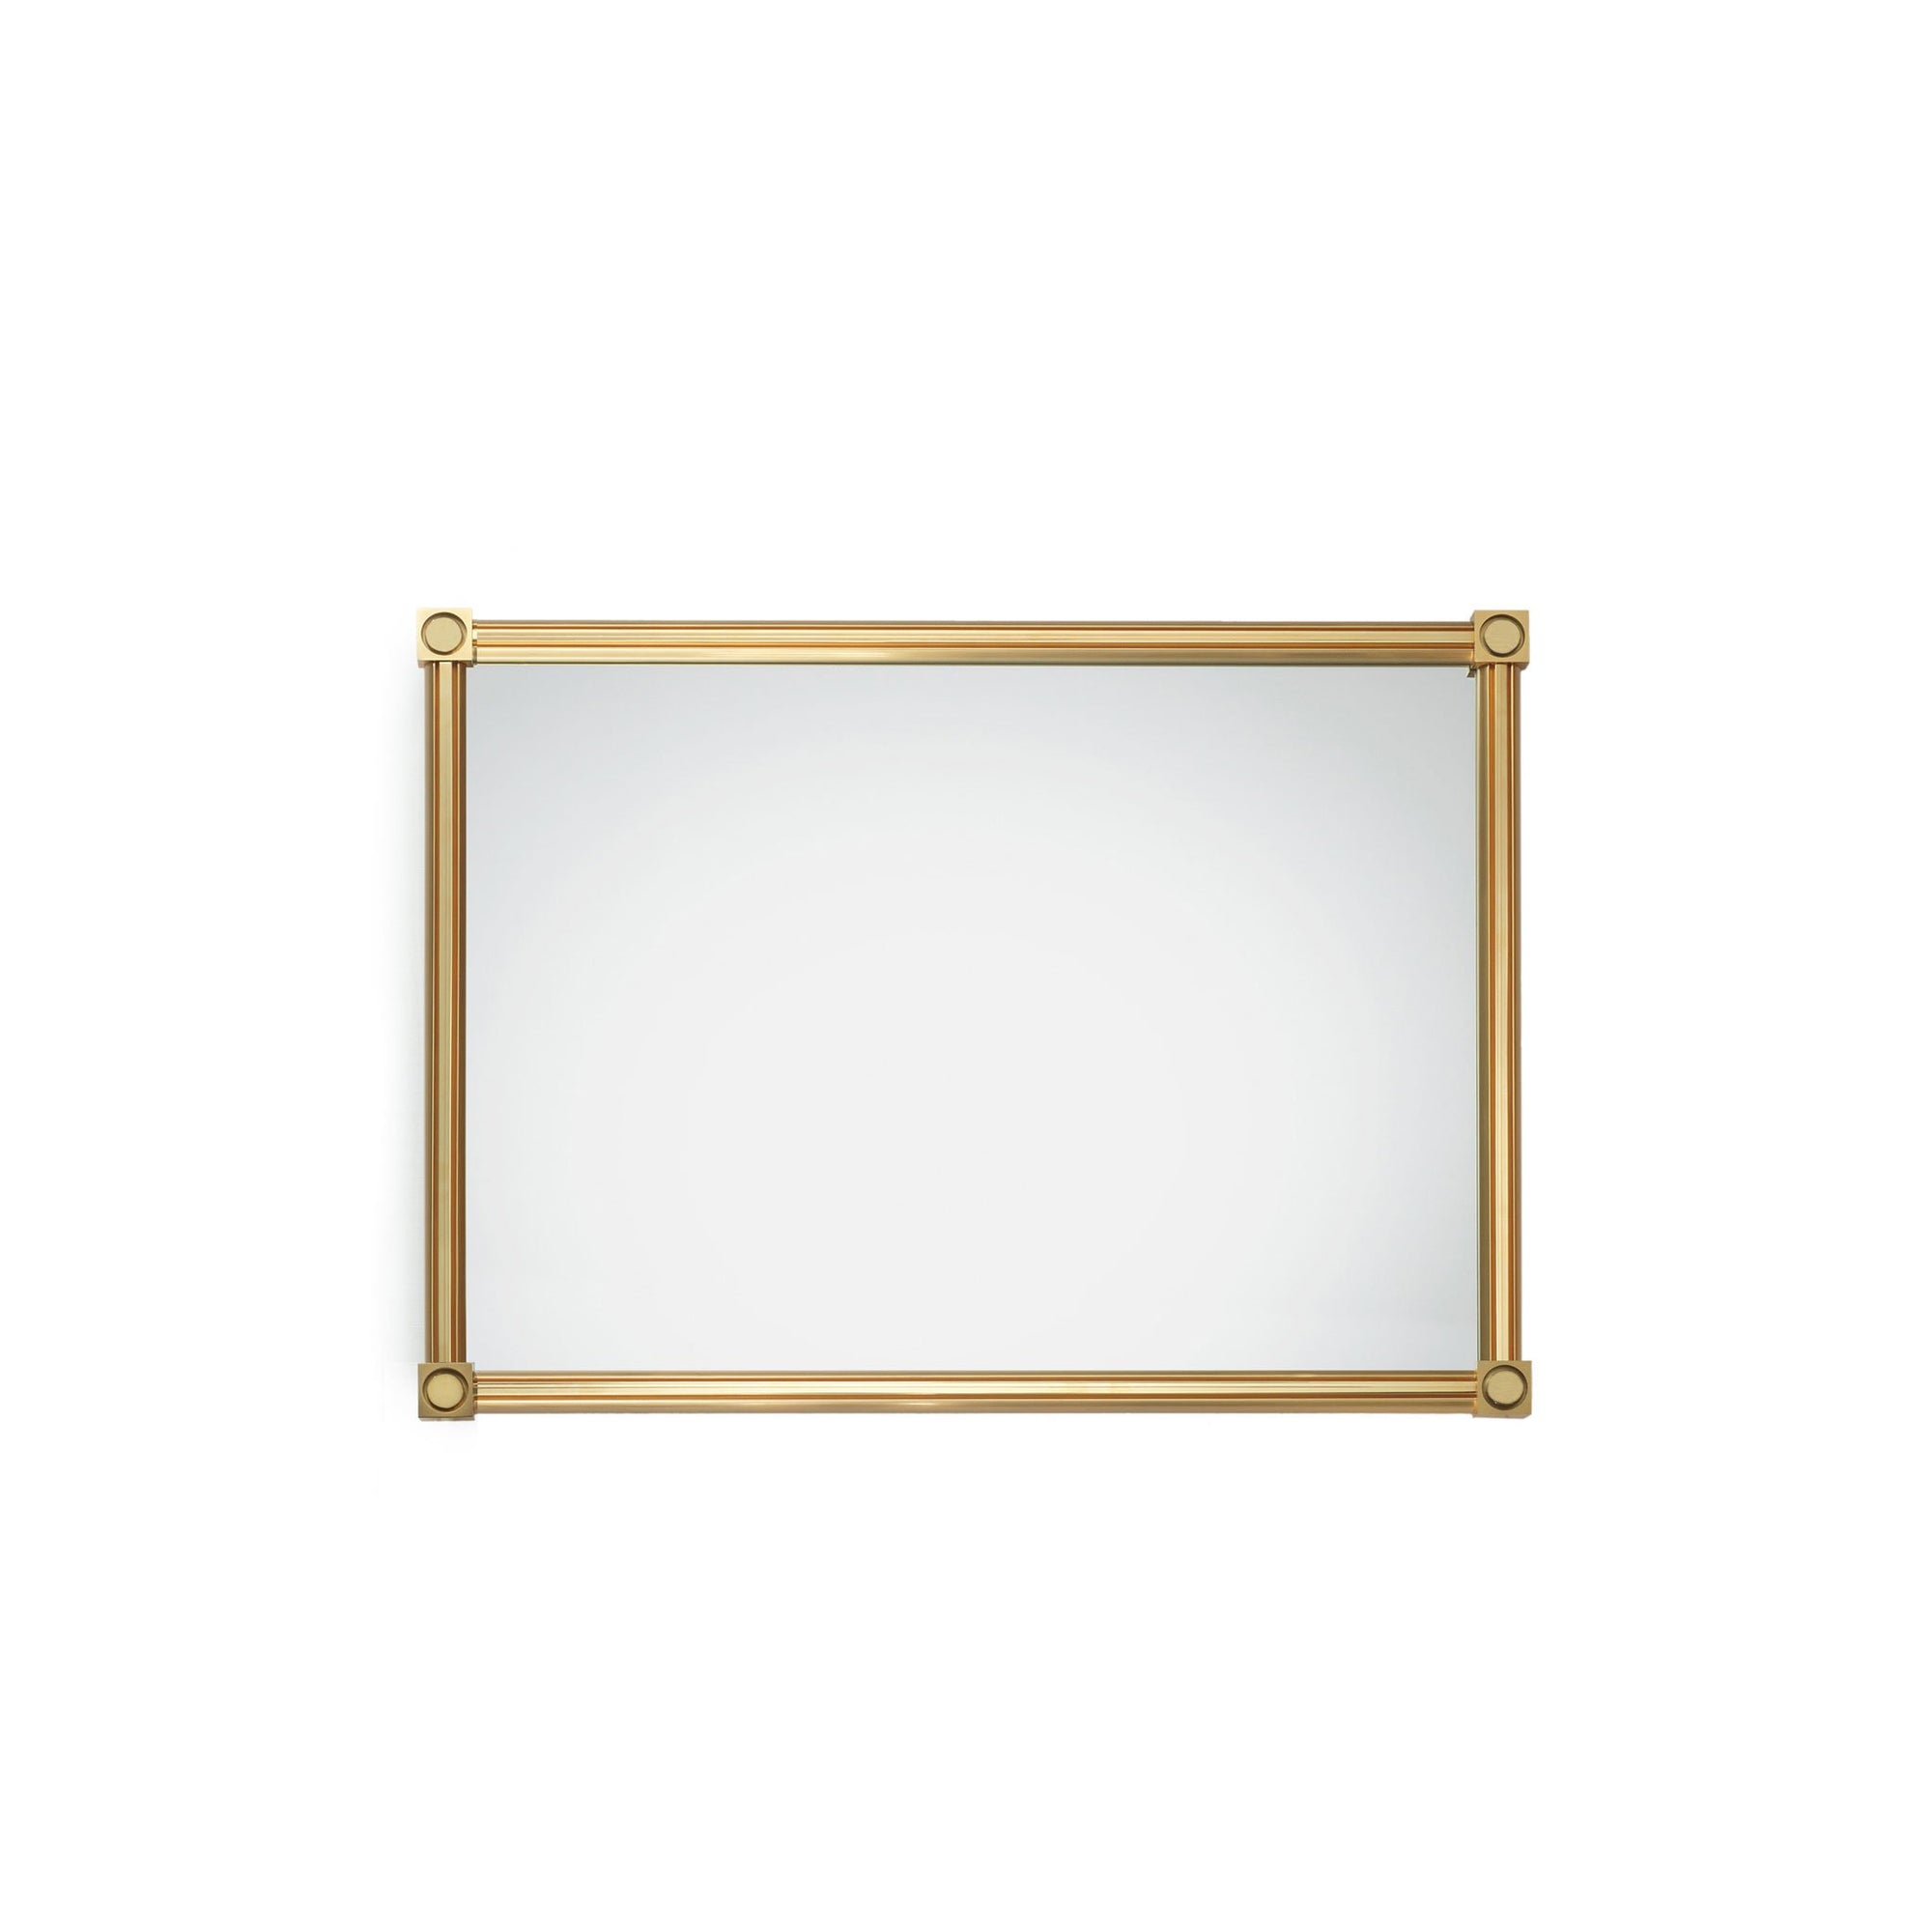 4269M21-GP Sherle Wagner International Modern Mirror in Gold Plate metal finish